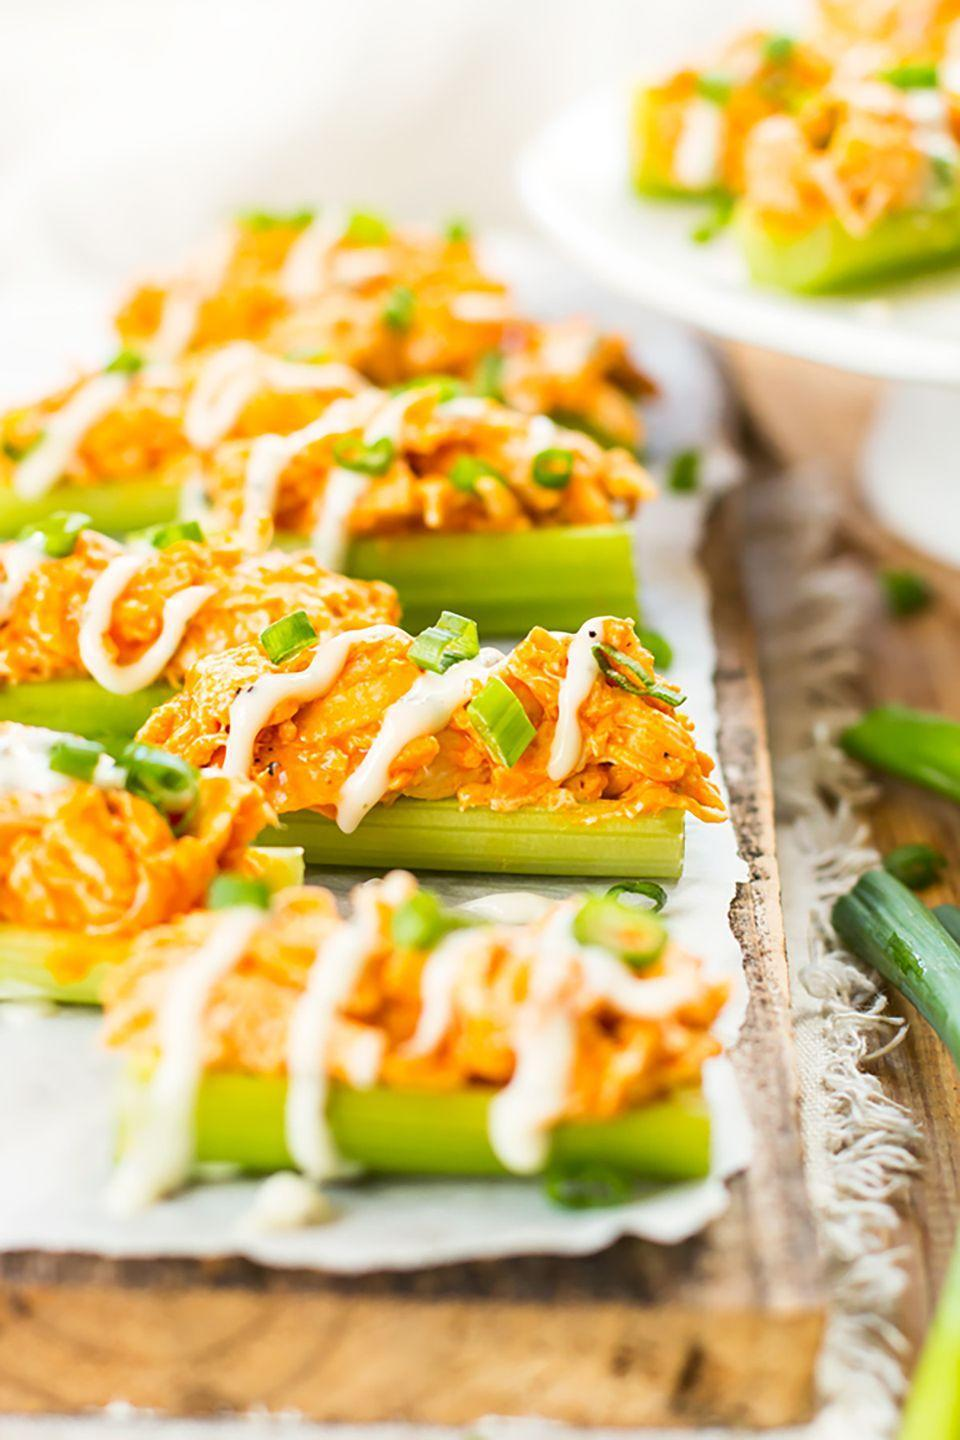 "<p>Buffalo chicken and celery isn't a combination you see every day, but the result is surprisingly delicious!</p><p><strong>Get the recipe at <a href=""http://glutenfreewithlb.com/buffalo-chicken-celery-sticks/"" rel=""nofollow noopener"" target=""_blank"" data-ylk=""slk:Gluten Free with L.B."" class=""link rapid-noclick-resp"">Gluten Free with L.B.</a></strong></p>"